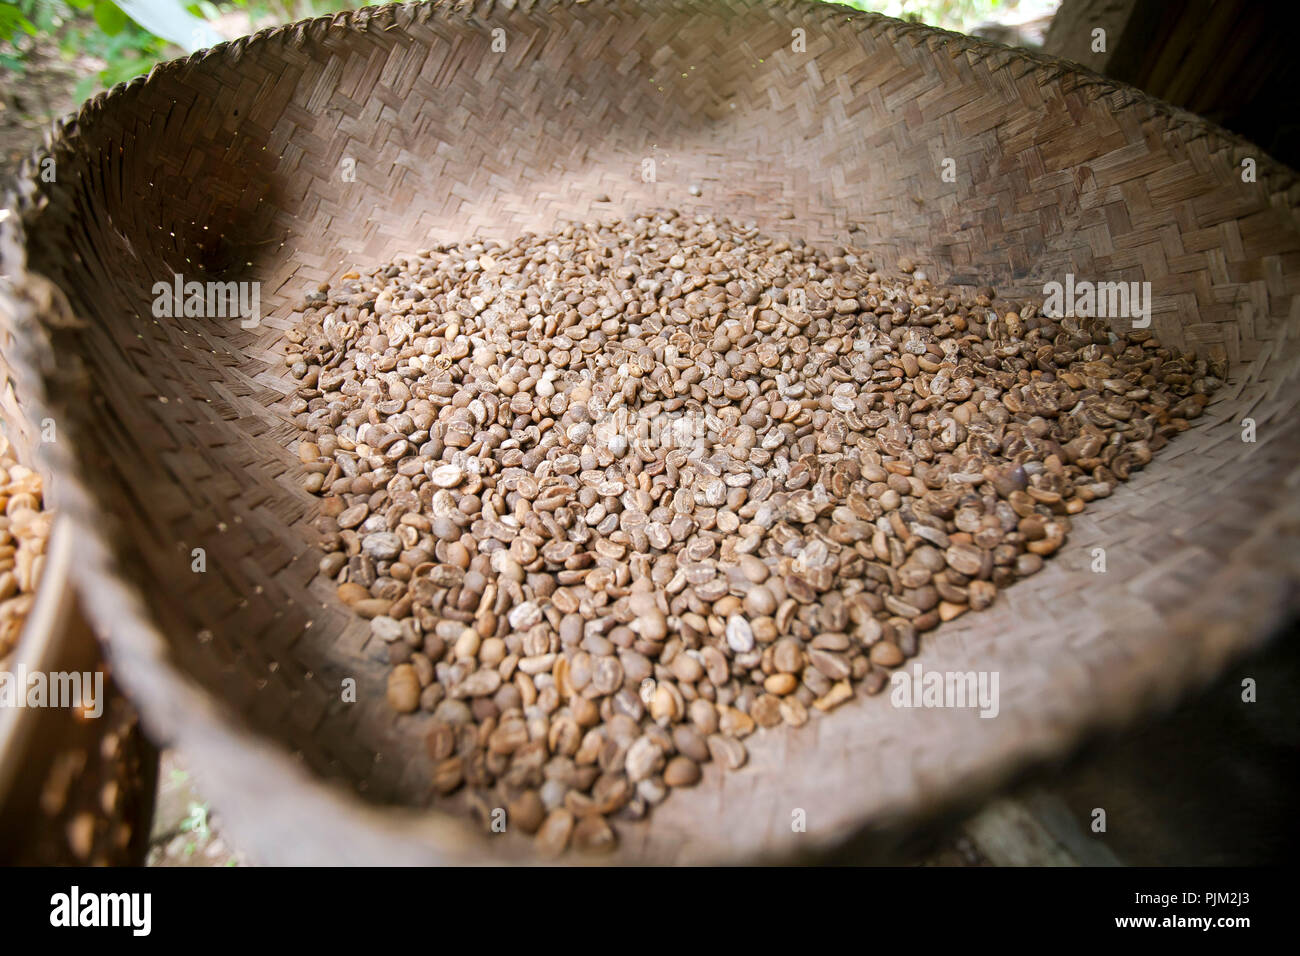 purified fermented Luwak coffee beans from Asian palm civet (Paradoxurus hermaphroditus) on coffee plantation, Ubud, Bali, Indonesia - Stock Image